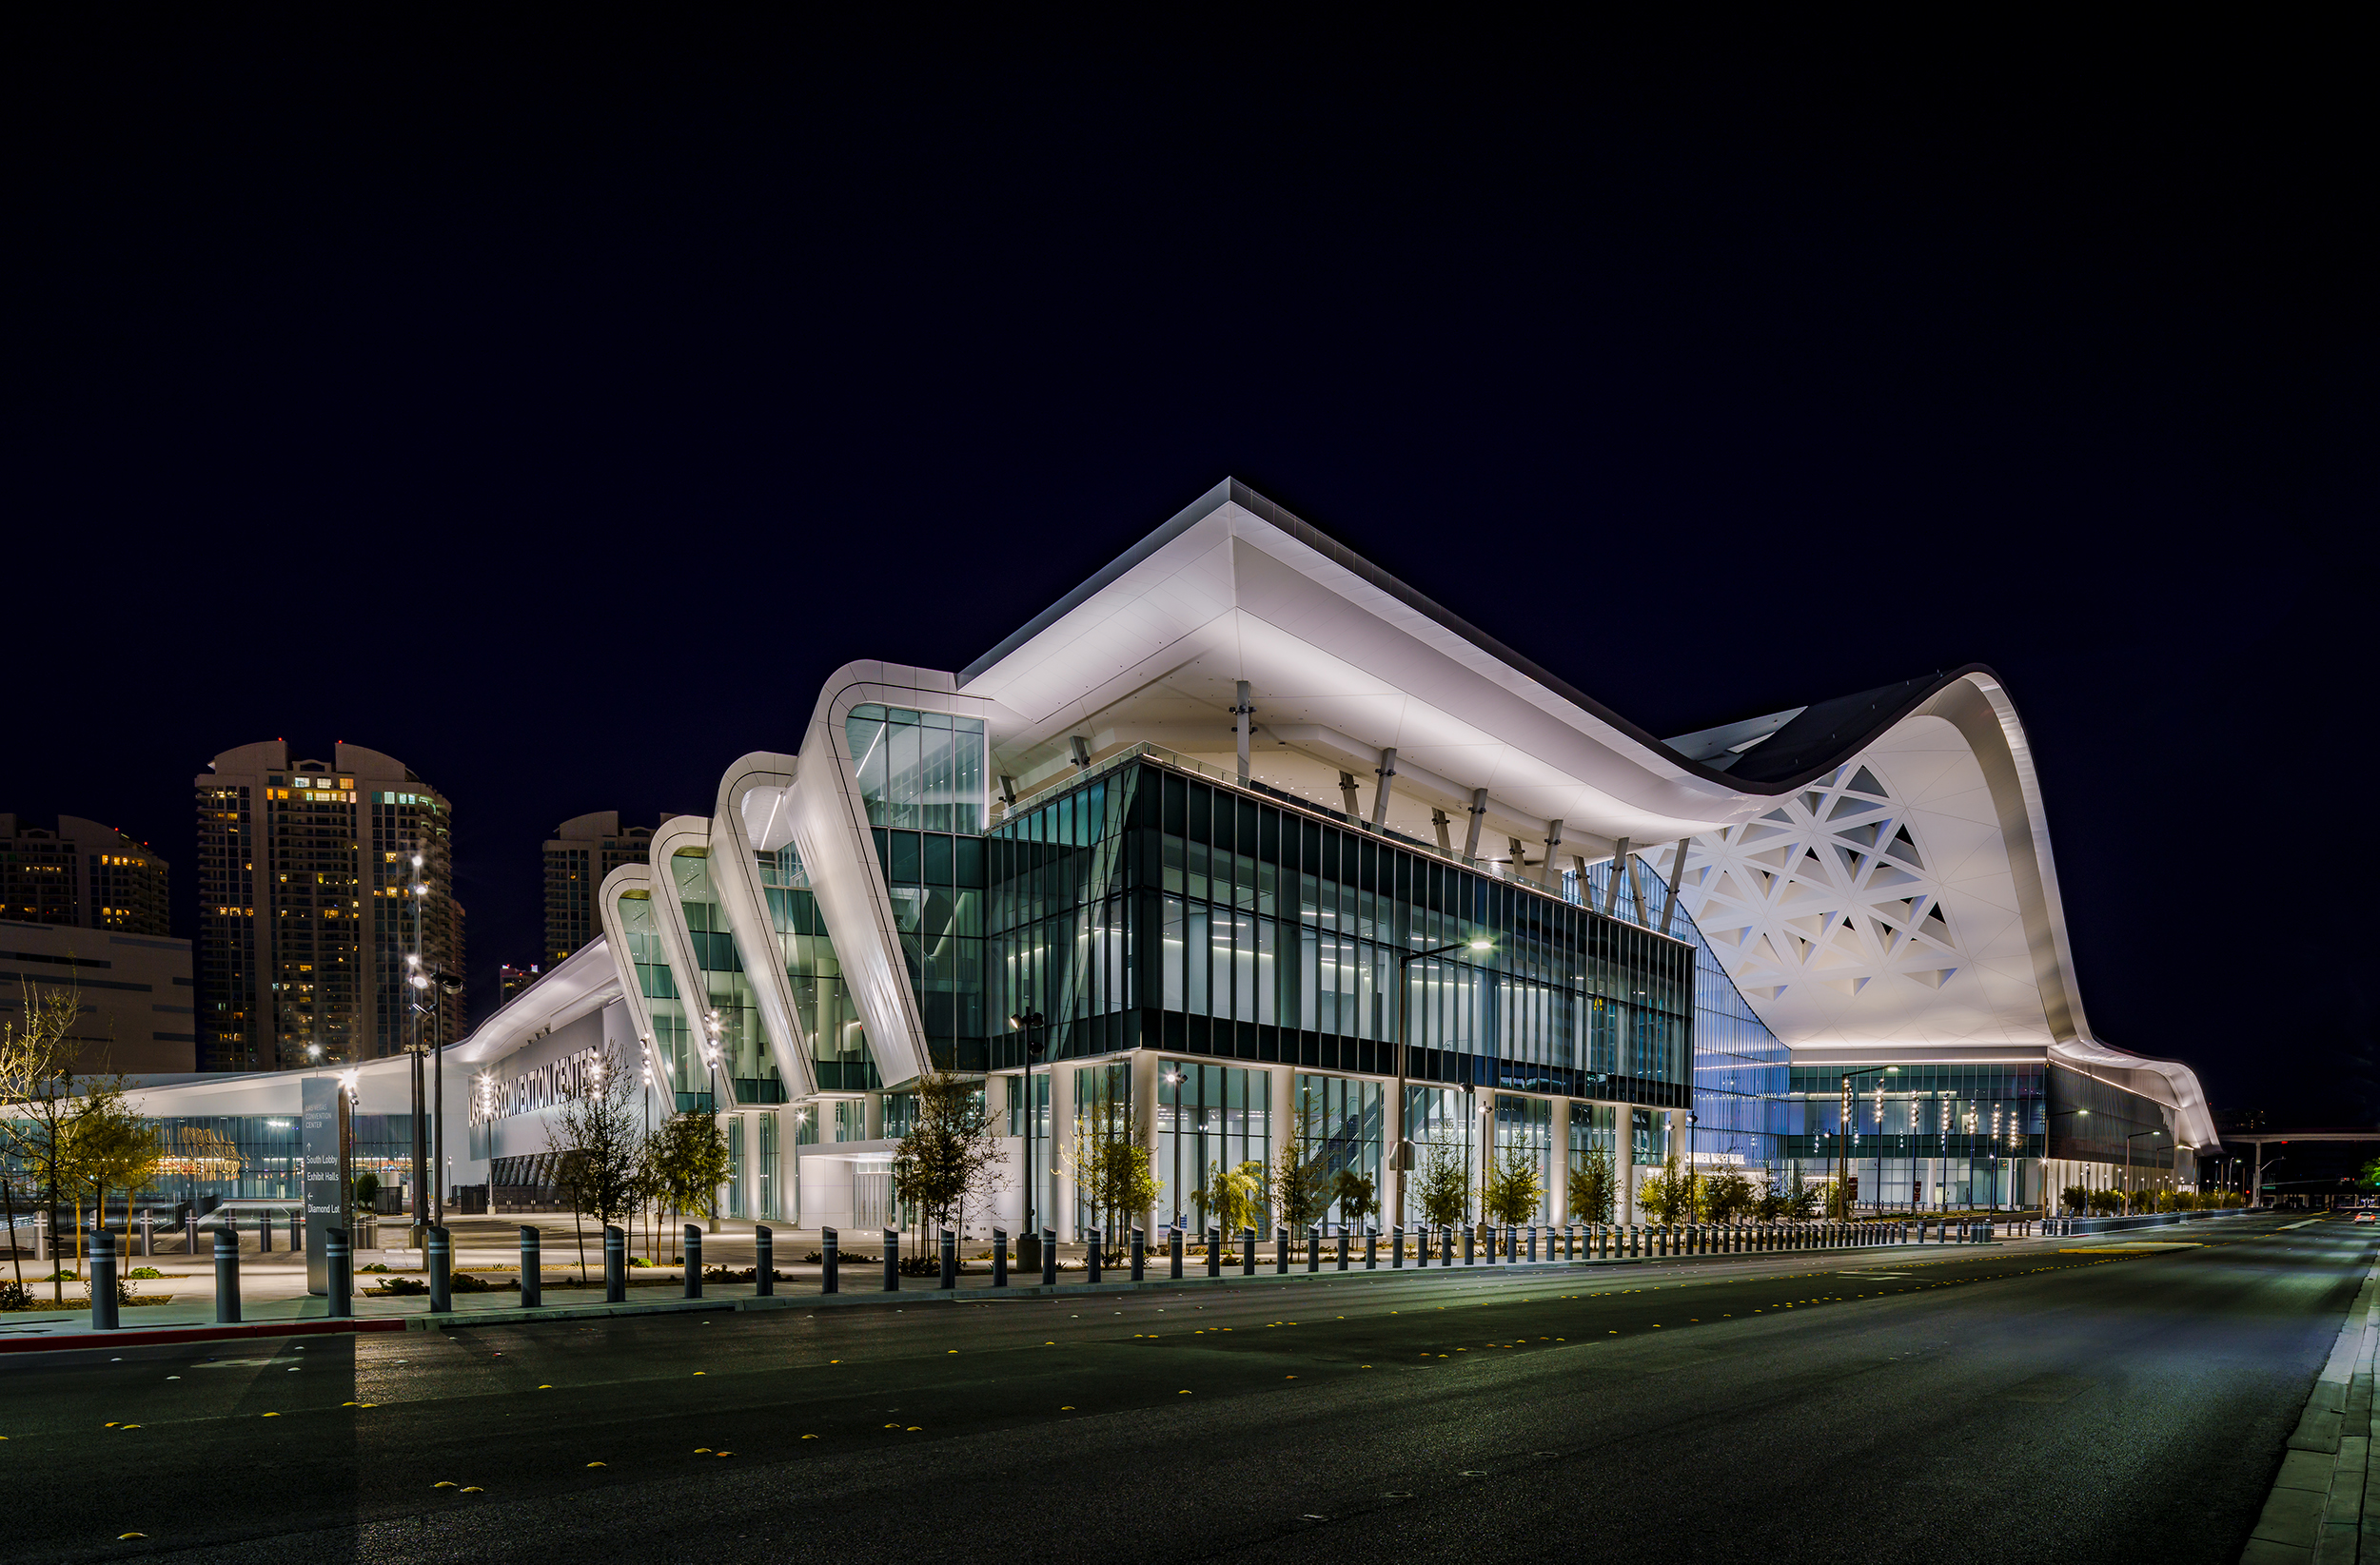 The $1 billion Las Vegas Convention Center West Hall expansion as seen at night